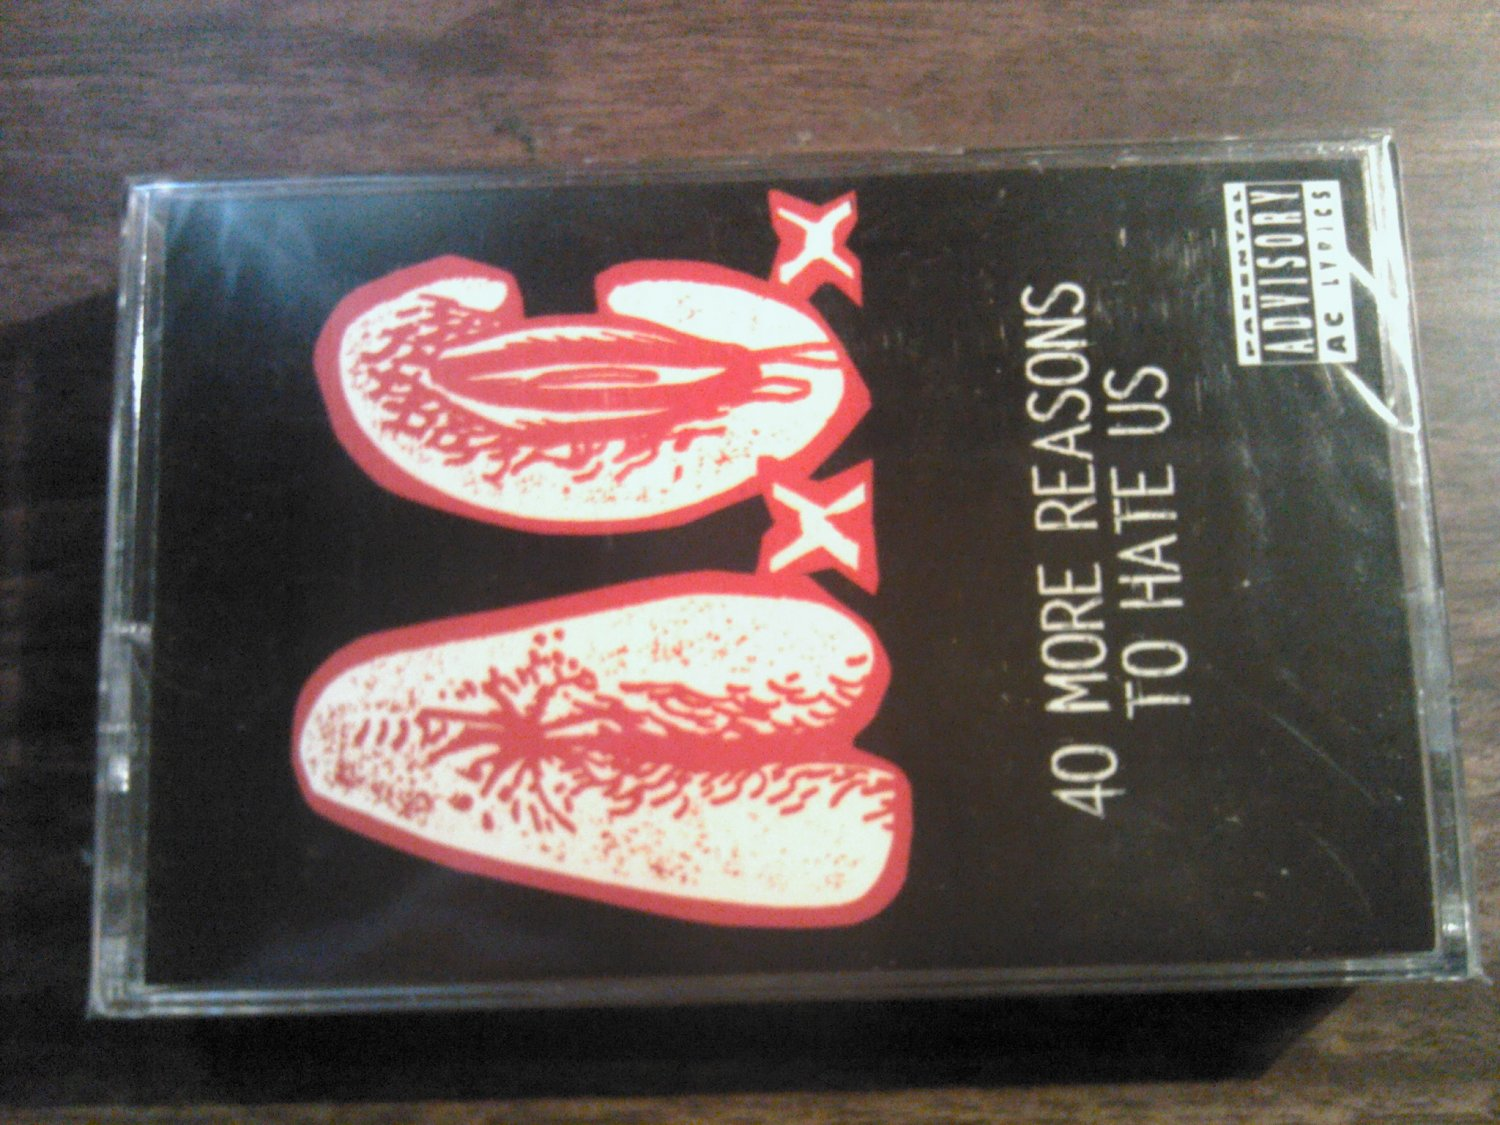 A.C. cassette tape 40 More Reasons To Hate Us ac anal c*nt SEALED